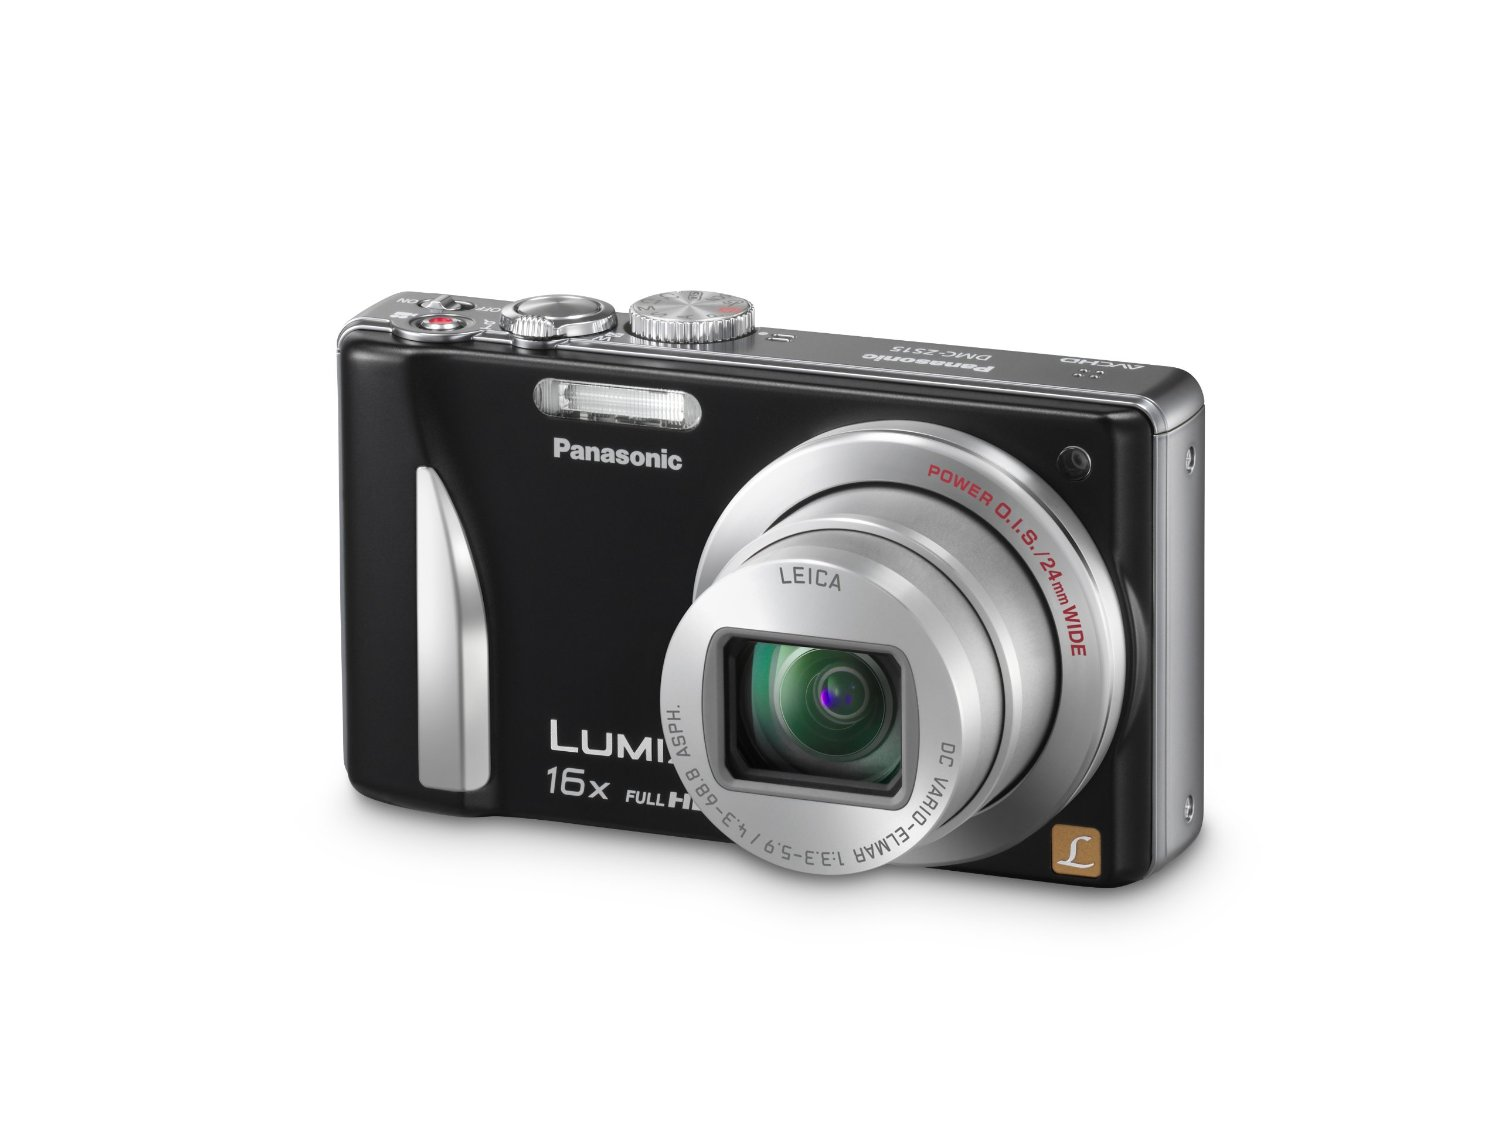 Panasonic Lumix DMC-ZS15 Camera (Black) (New)